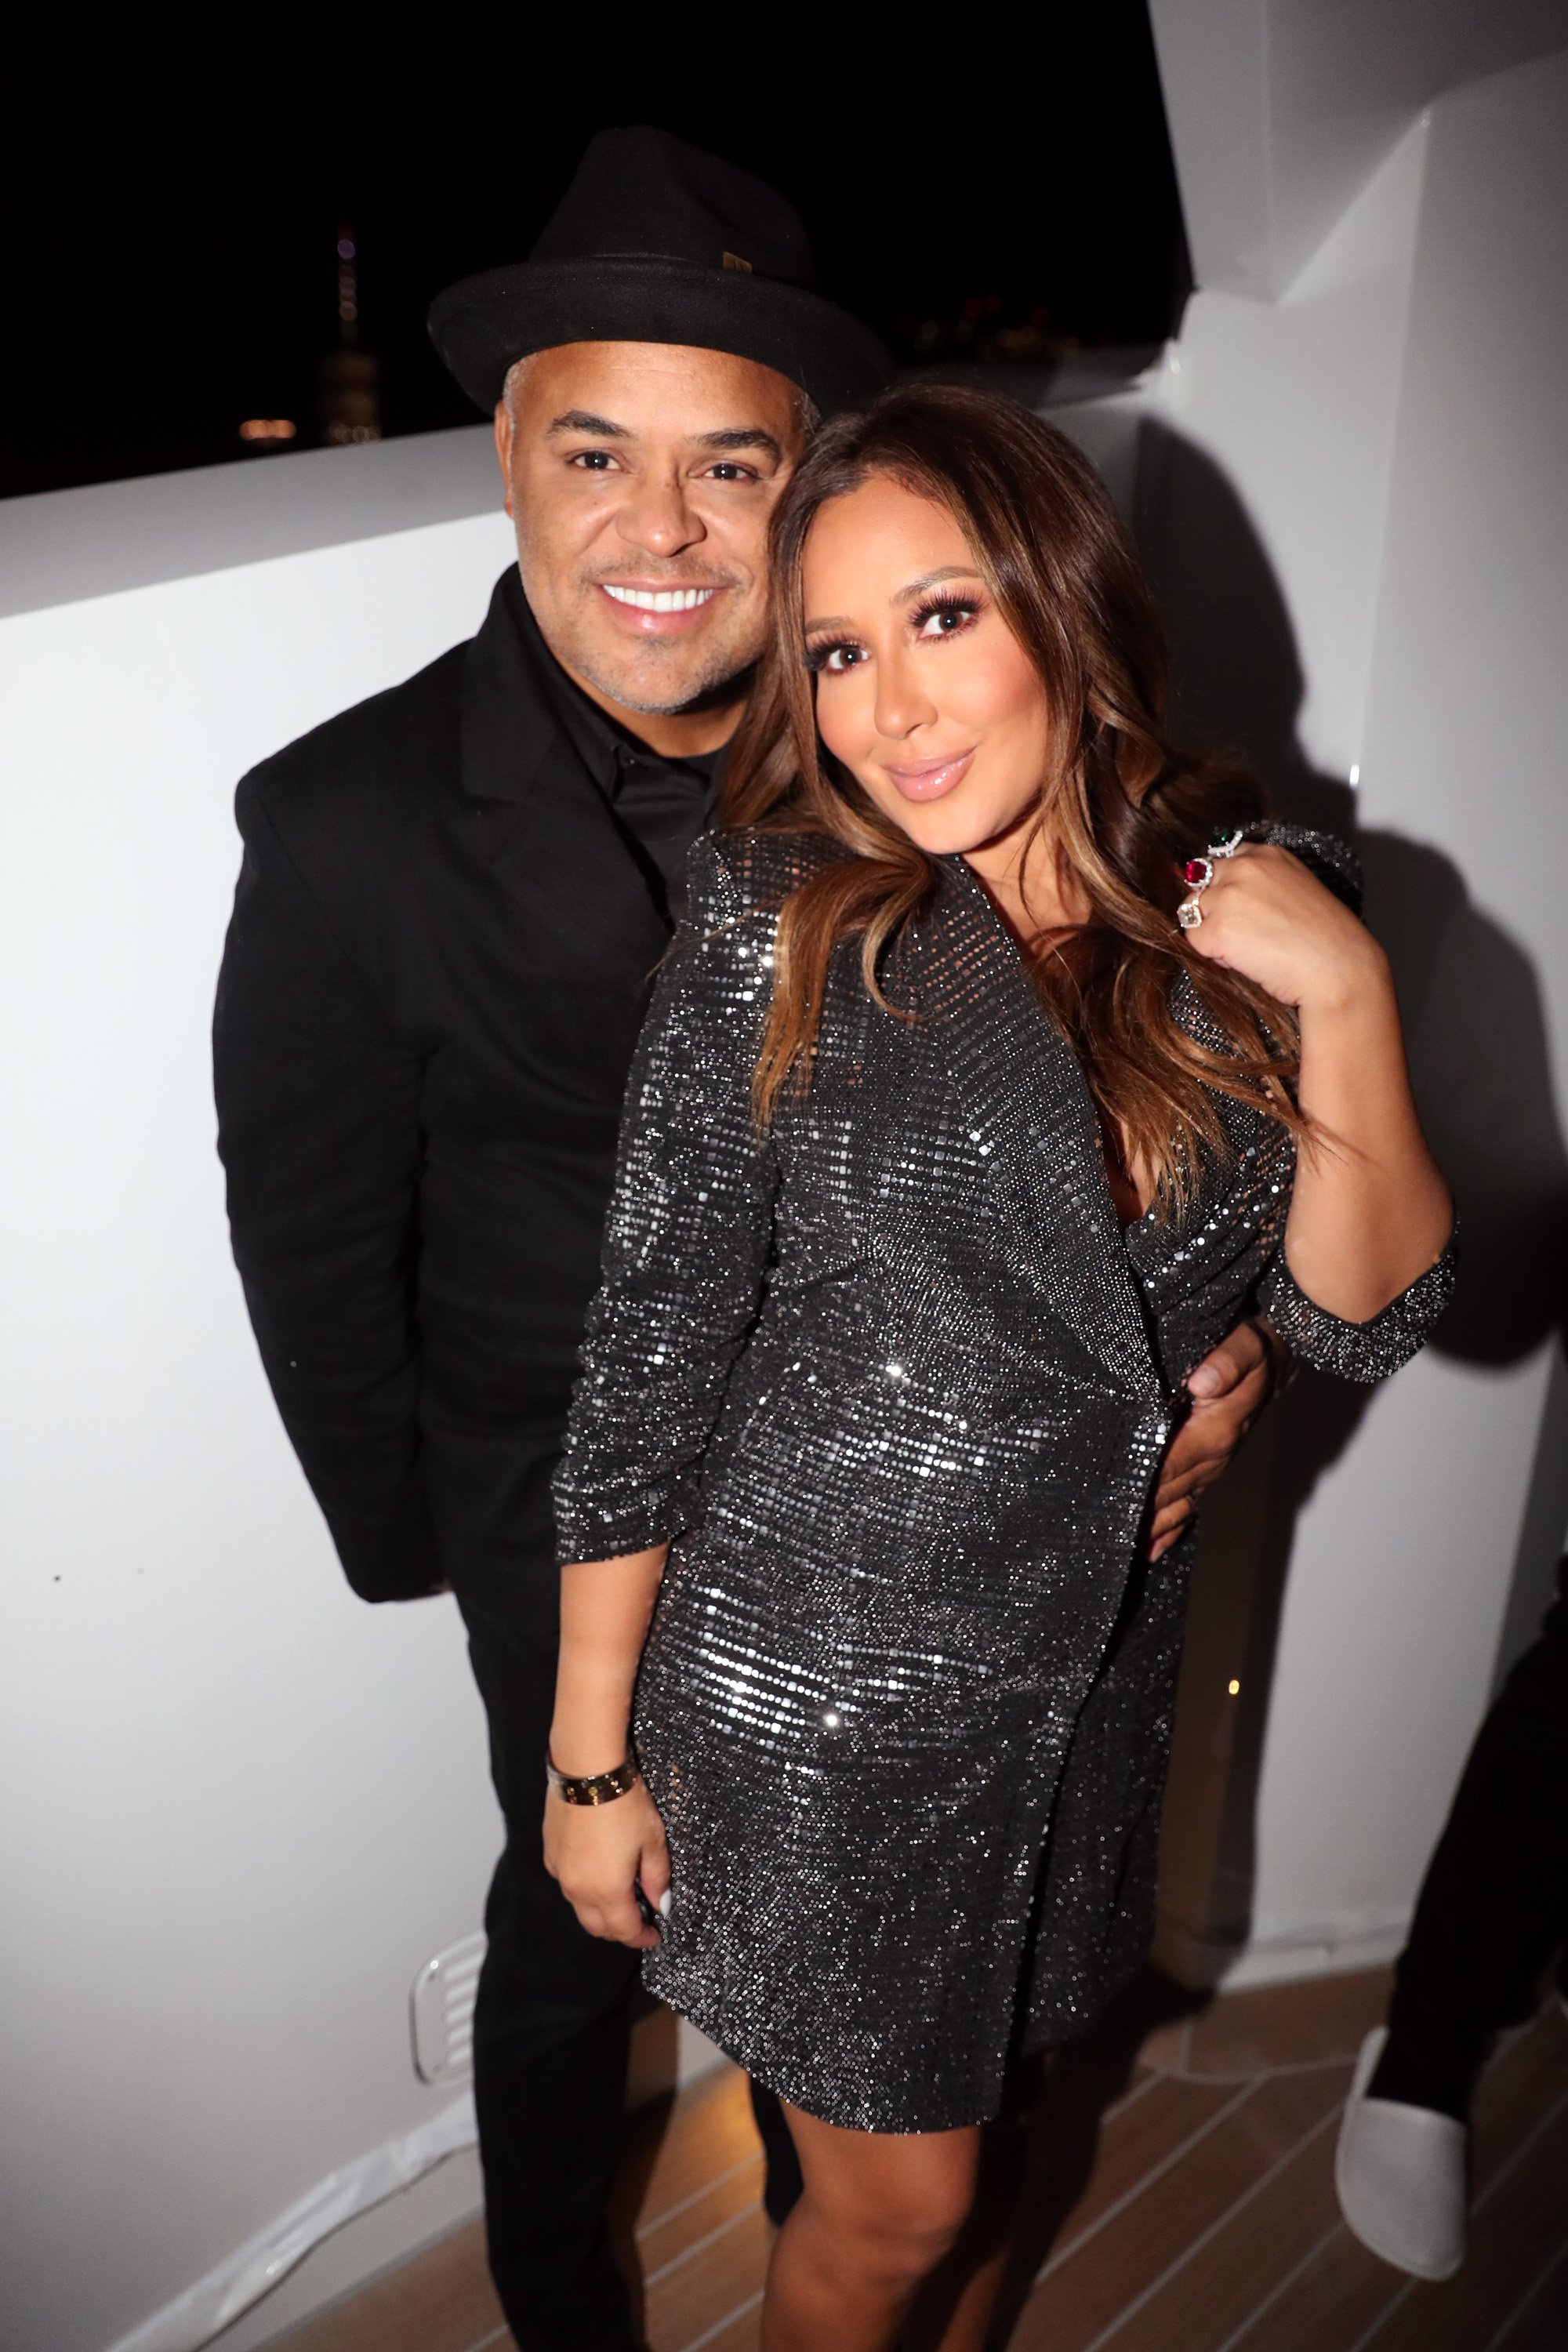 Israel Houghton and Adrienne Bailon attend the Lumiere De Vie Hommes Launch Event Aboard Superyacht Utopia IV on October 13, 2018 | Photo: GettyImages